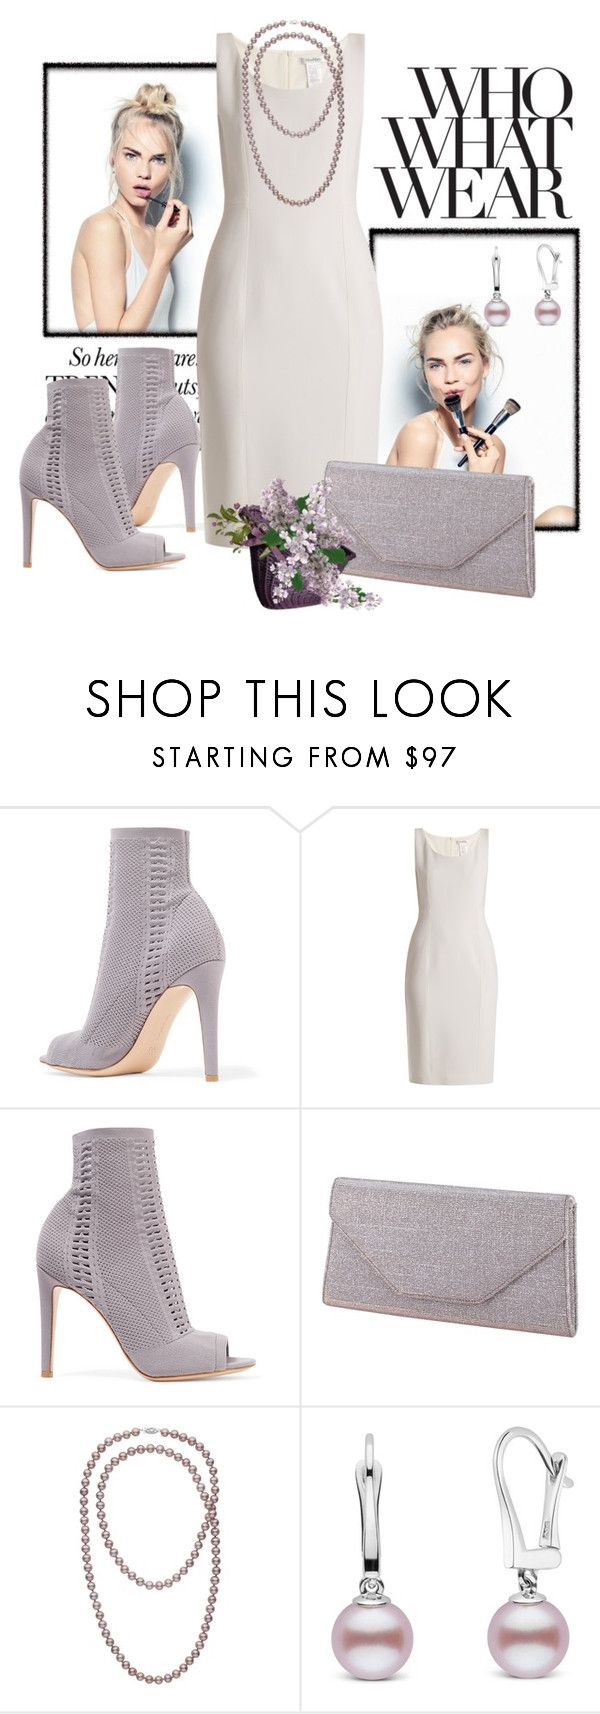 """""""Max and Mara Panaria Dress"""" by ohlmanvickie ❤ liked on Polyvore featuring Sephora Collection, Gianvito Rossi, MaxMara, Rainbow Club and Who What Wear"""